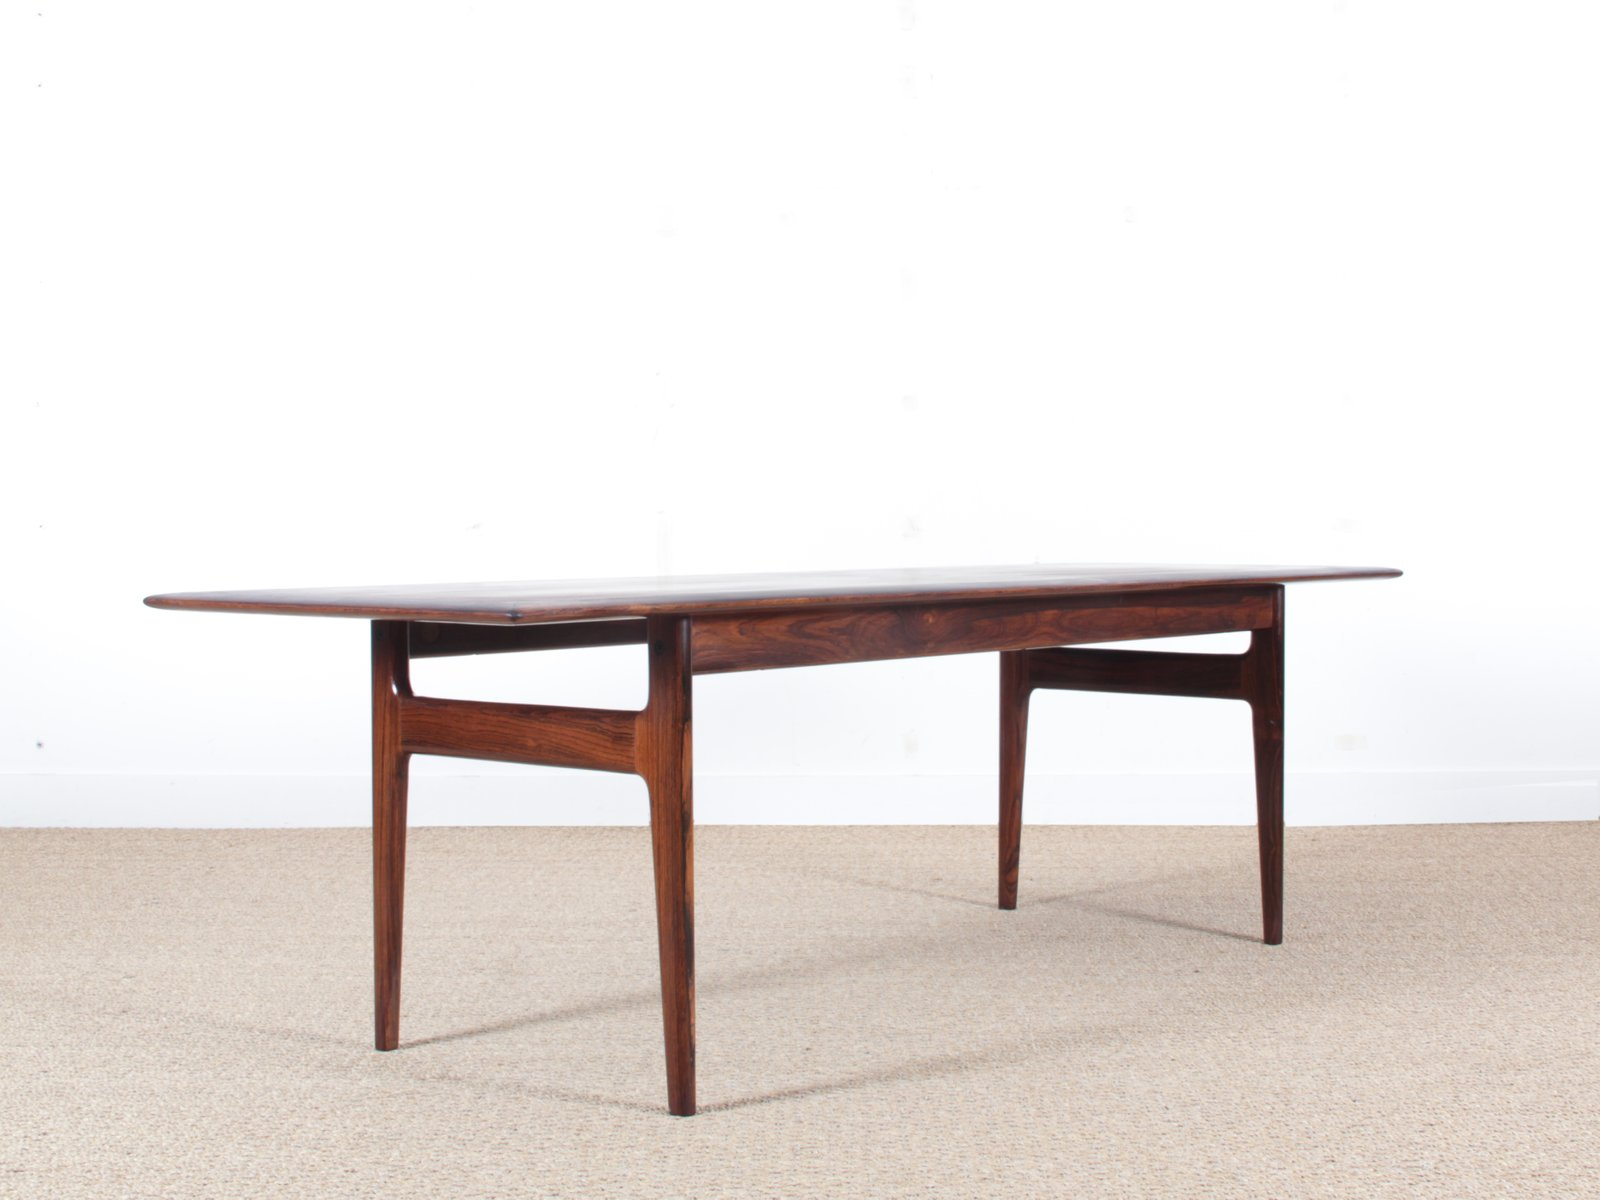 mid century modern scandinavian coffee table in rio rosewood from cfc silkeborg 1960s for sale. Black Bedroom Furniture Sets. Home Design Ideas